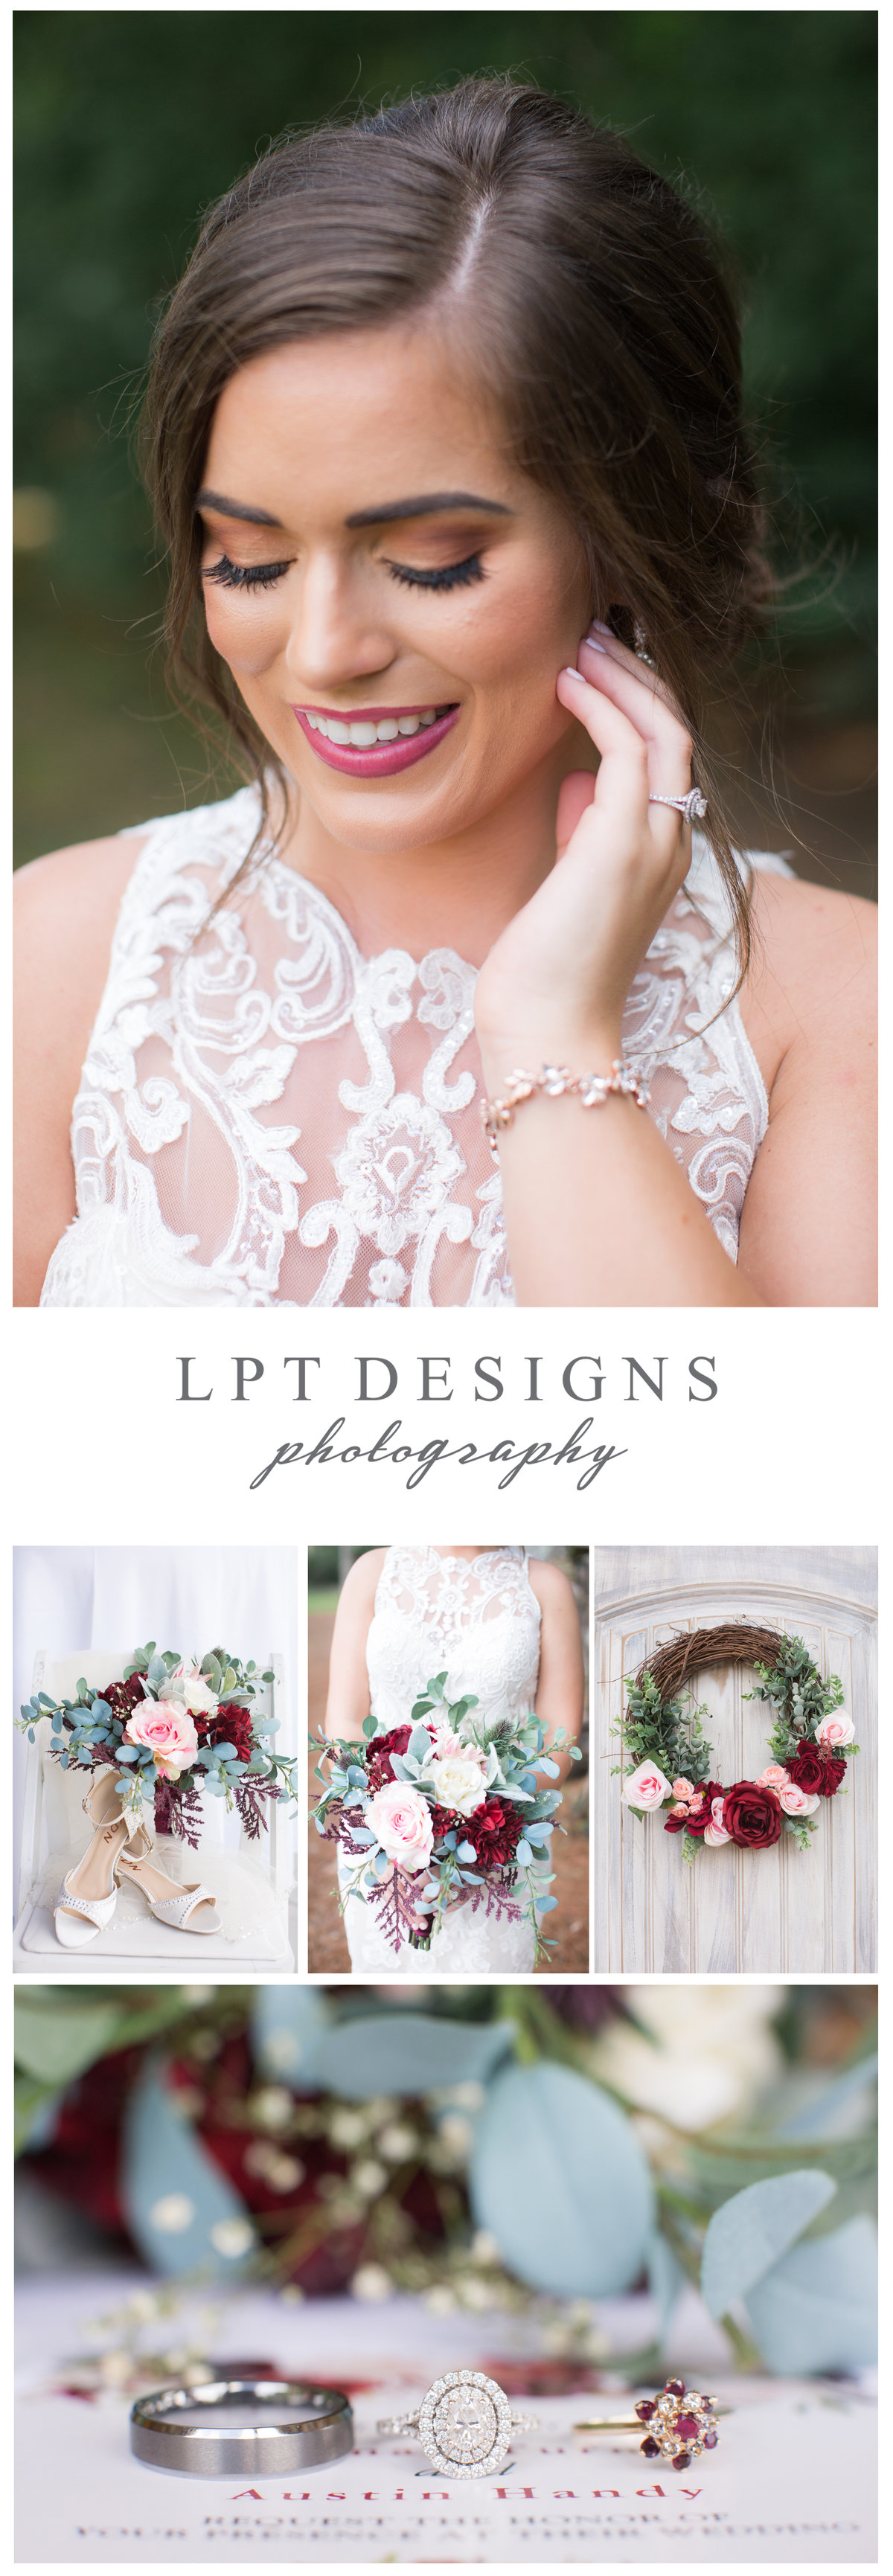 LPT Designs Photography Lydia Thrift Gadsden Alabama Fine Art Wedding Photographer HA 1